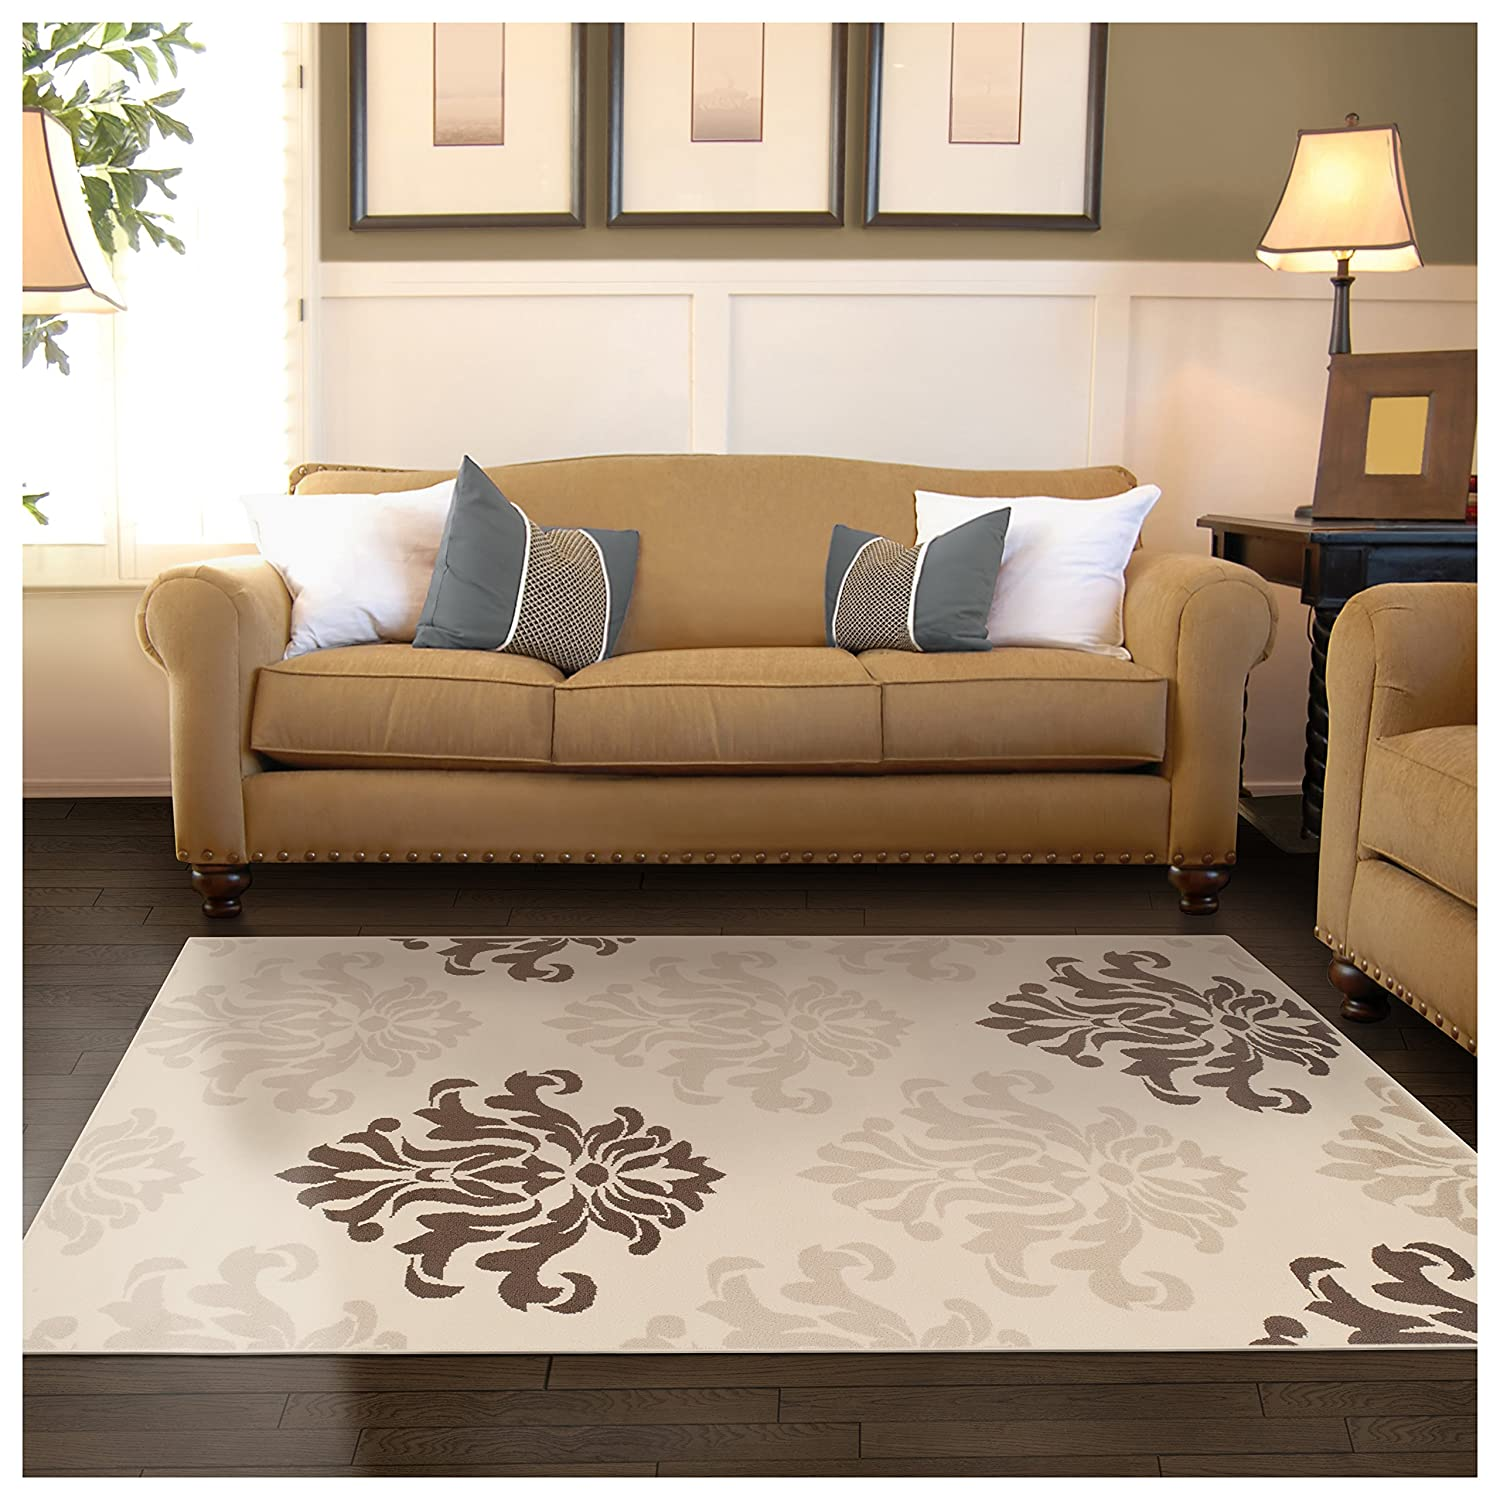 Chic Tonal Damask Pattern Water-Repellent Rugs 8mm Pile Height with Jute Backing Anti-Static Cream Superior Designer Casper Collection Area Rug 2 x 3 Rug